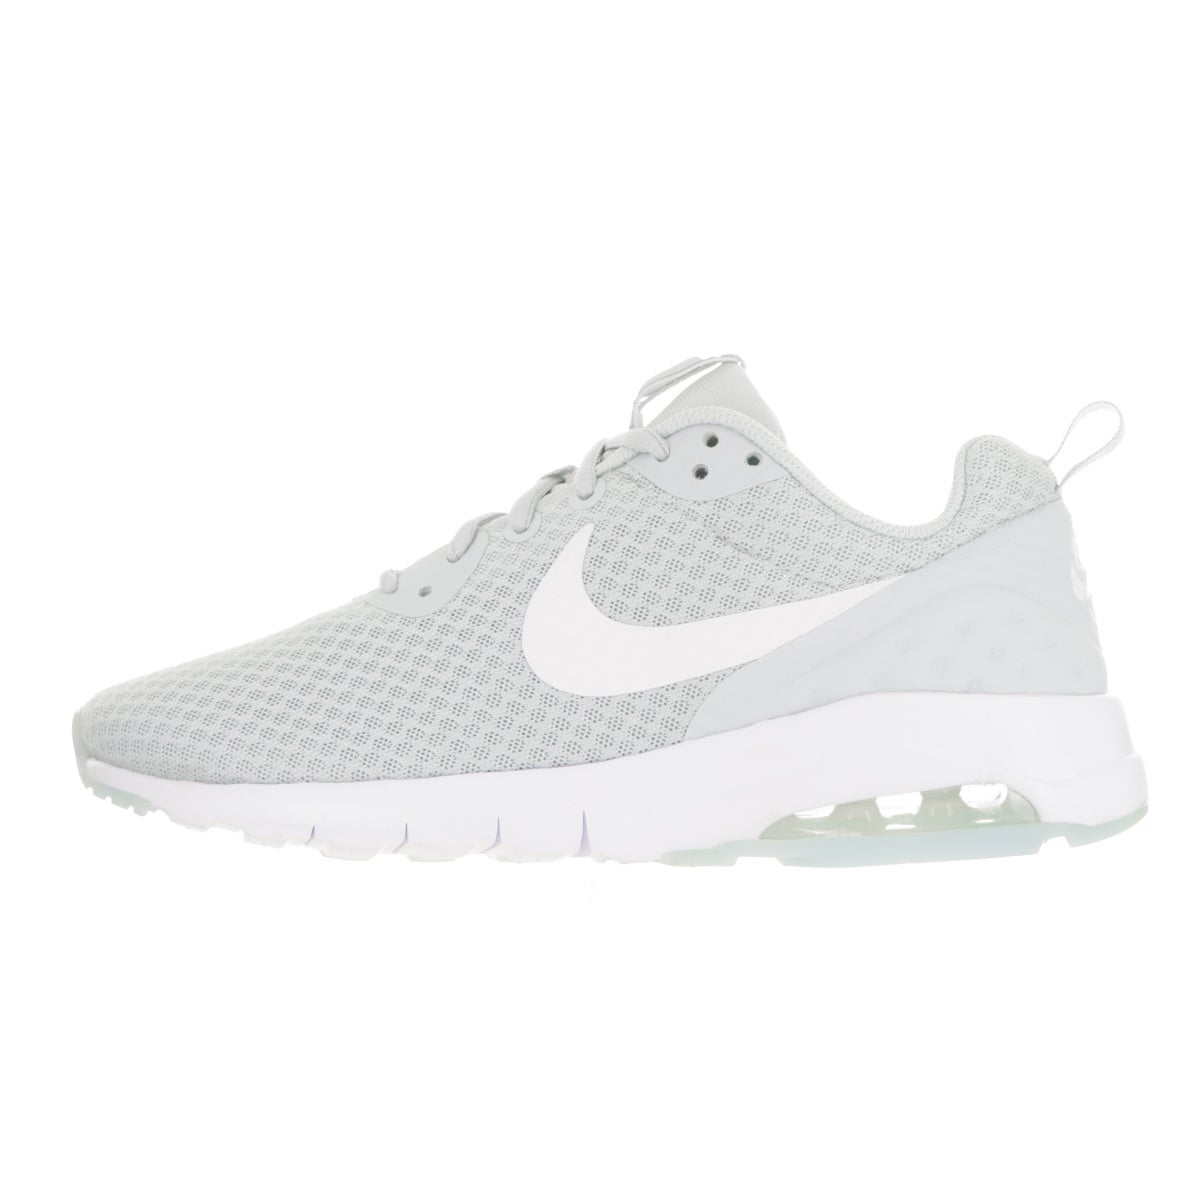 innovative design 29f1d 4f315 Shop Nike Women s Air Max Motion LW Pure Platinum White Training Shoe -  Free Shipping Today - Overstock - 13344046